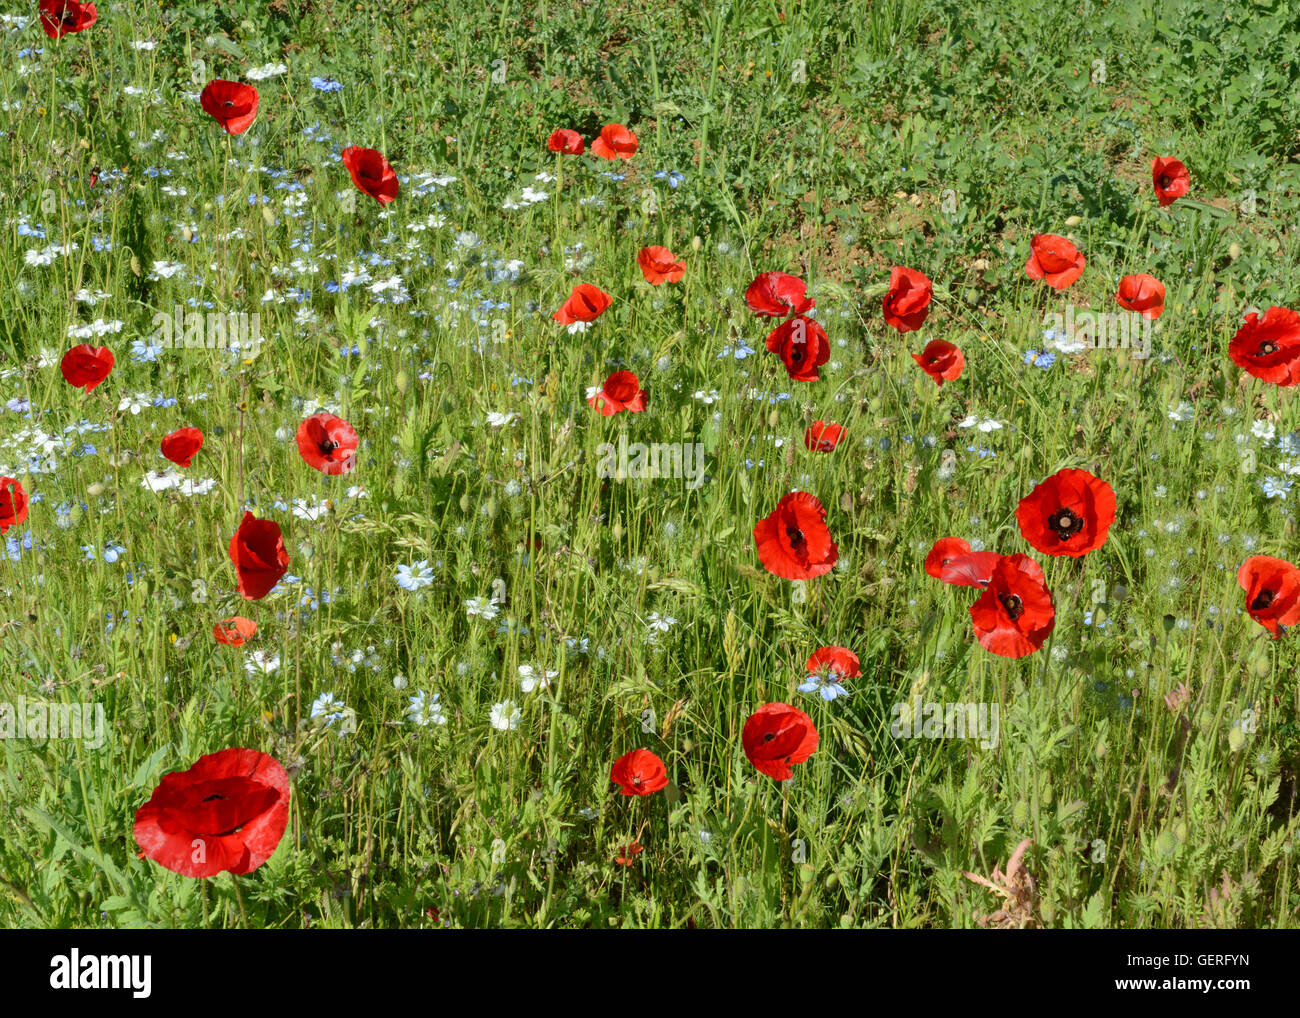 French meadow flowers grasses poppies green red flowers floral stock french meadow flowers grasses poppies green red flowers floral pattern floral background mightylinksfo